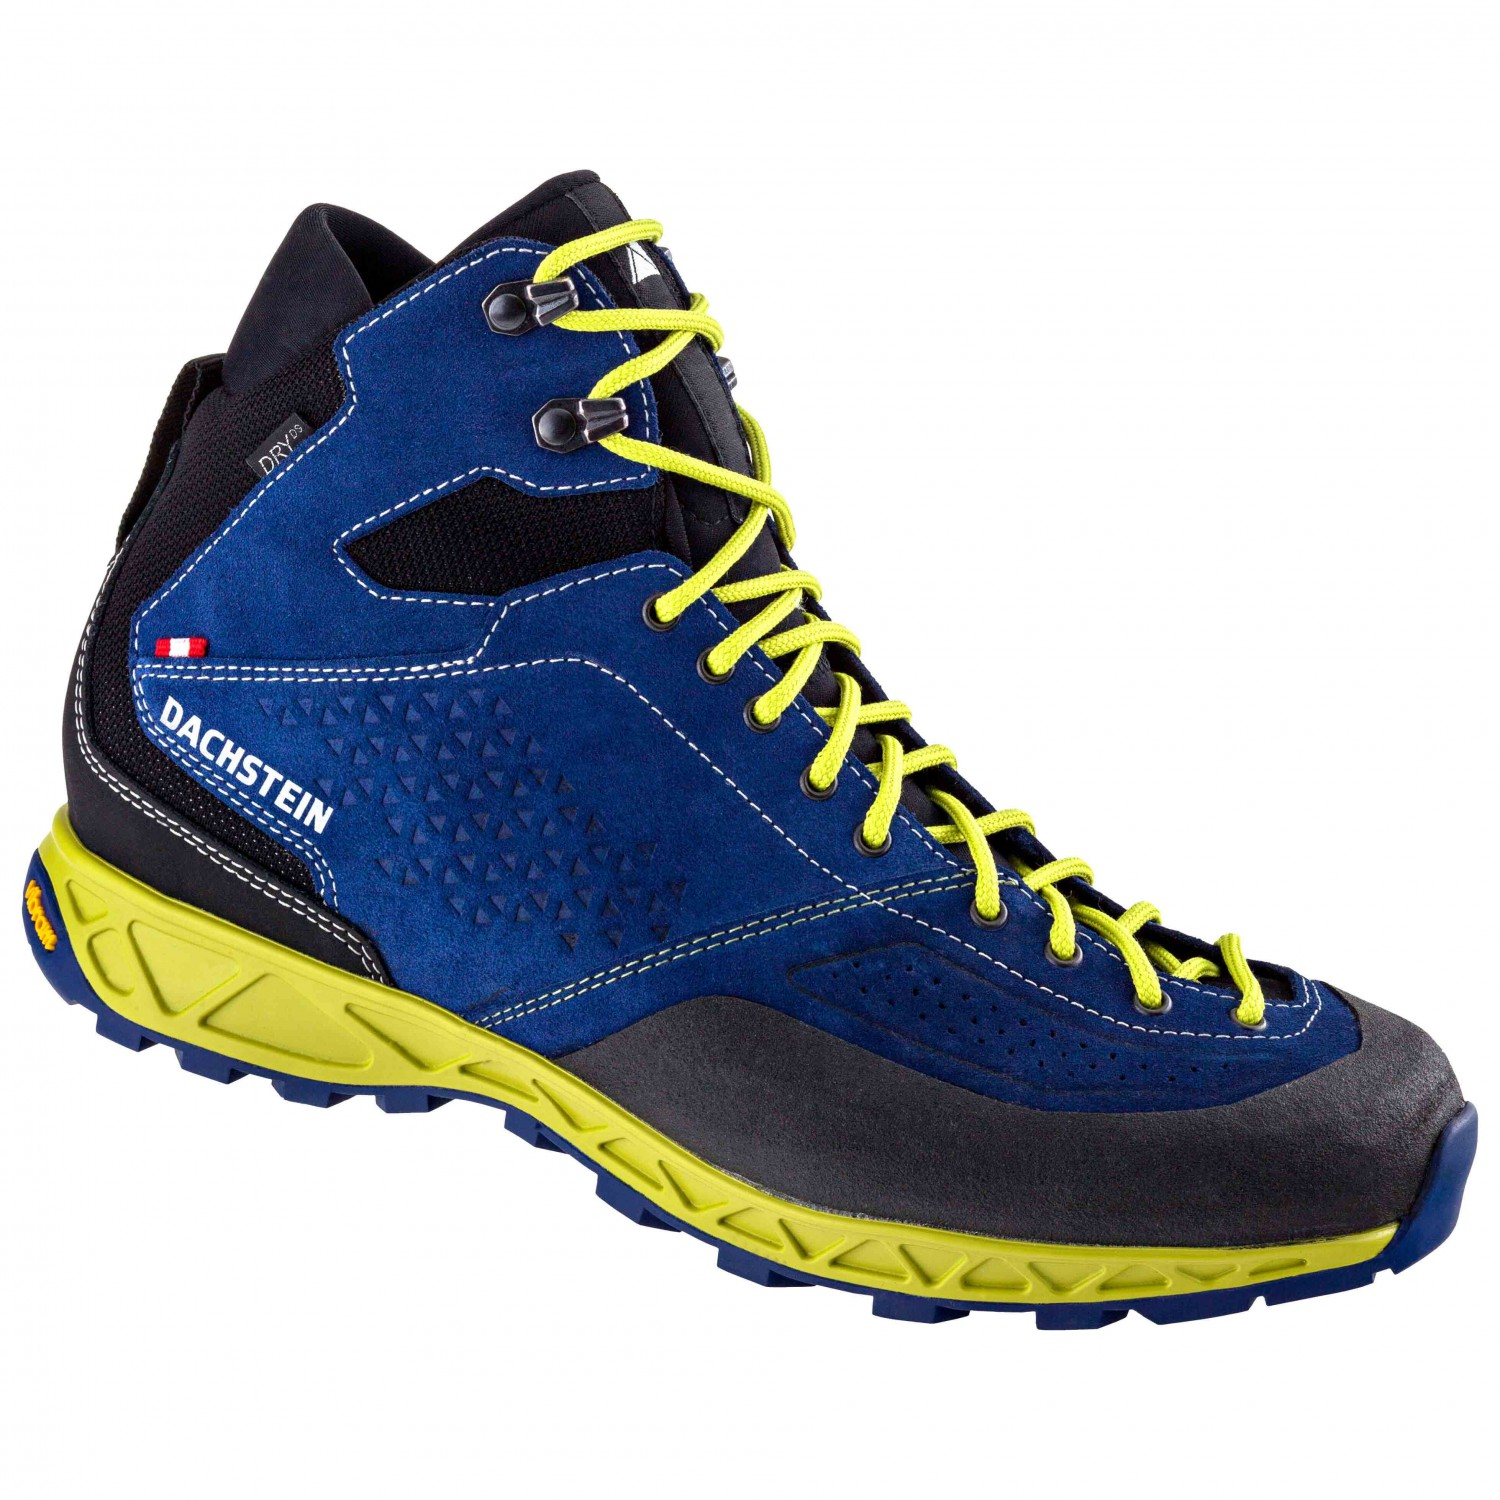 Dachstein - Super Ferrata MC DDS - Approachschuhe Ocean / Lime